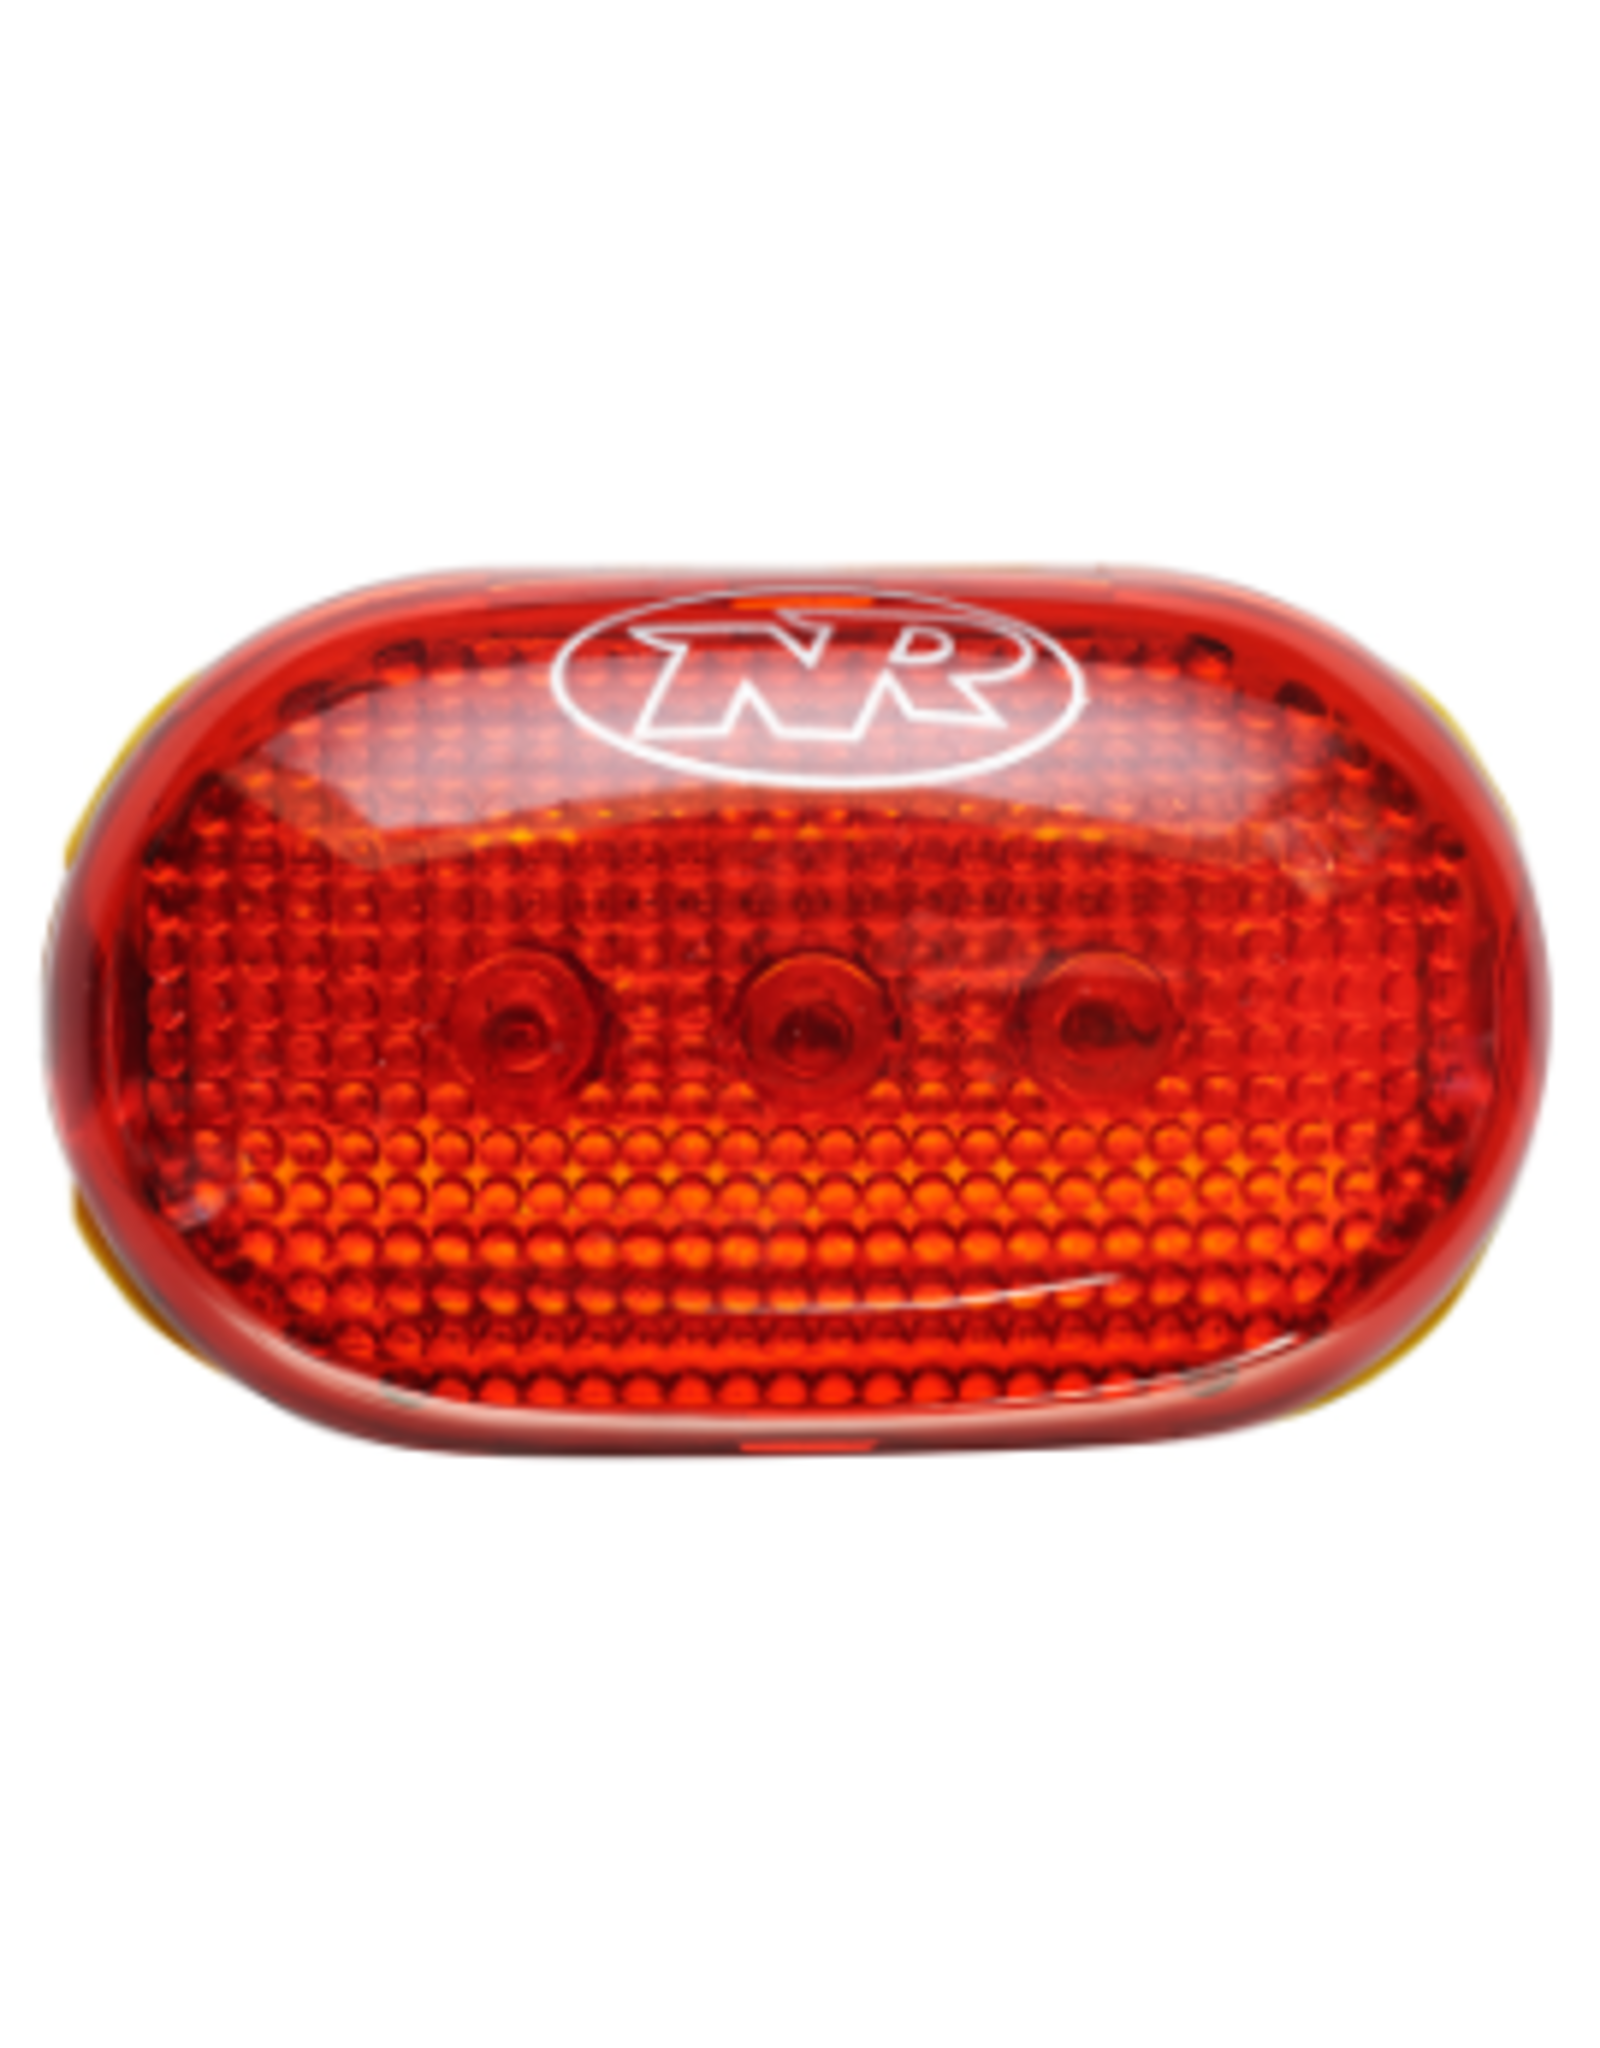 NITE RIDER LIGHT TAIL LIGHT NITE RIDER TL-5.0 5LED